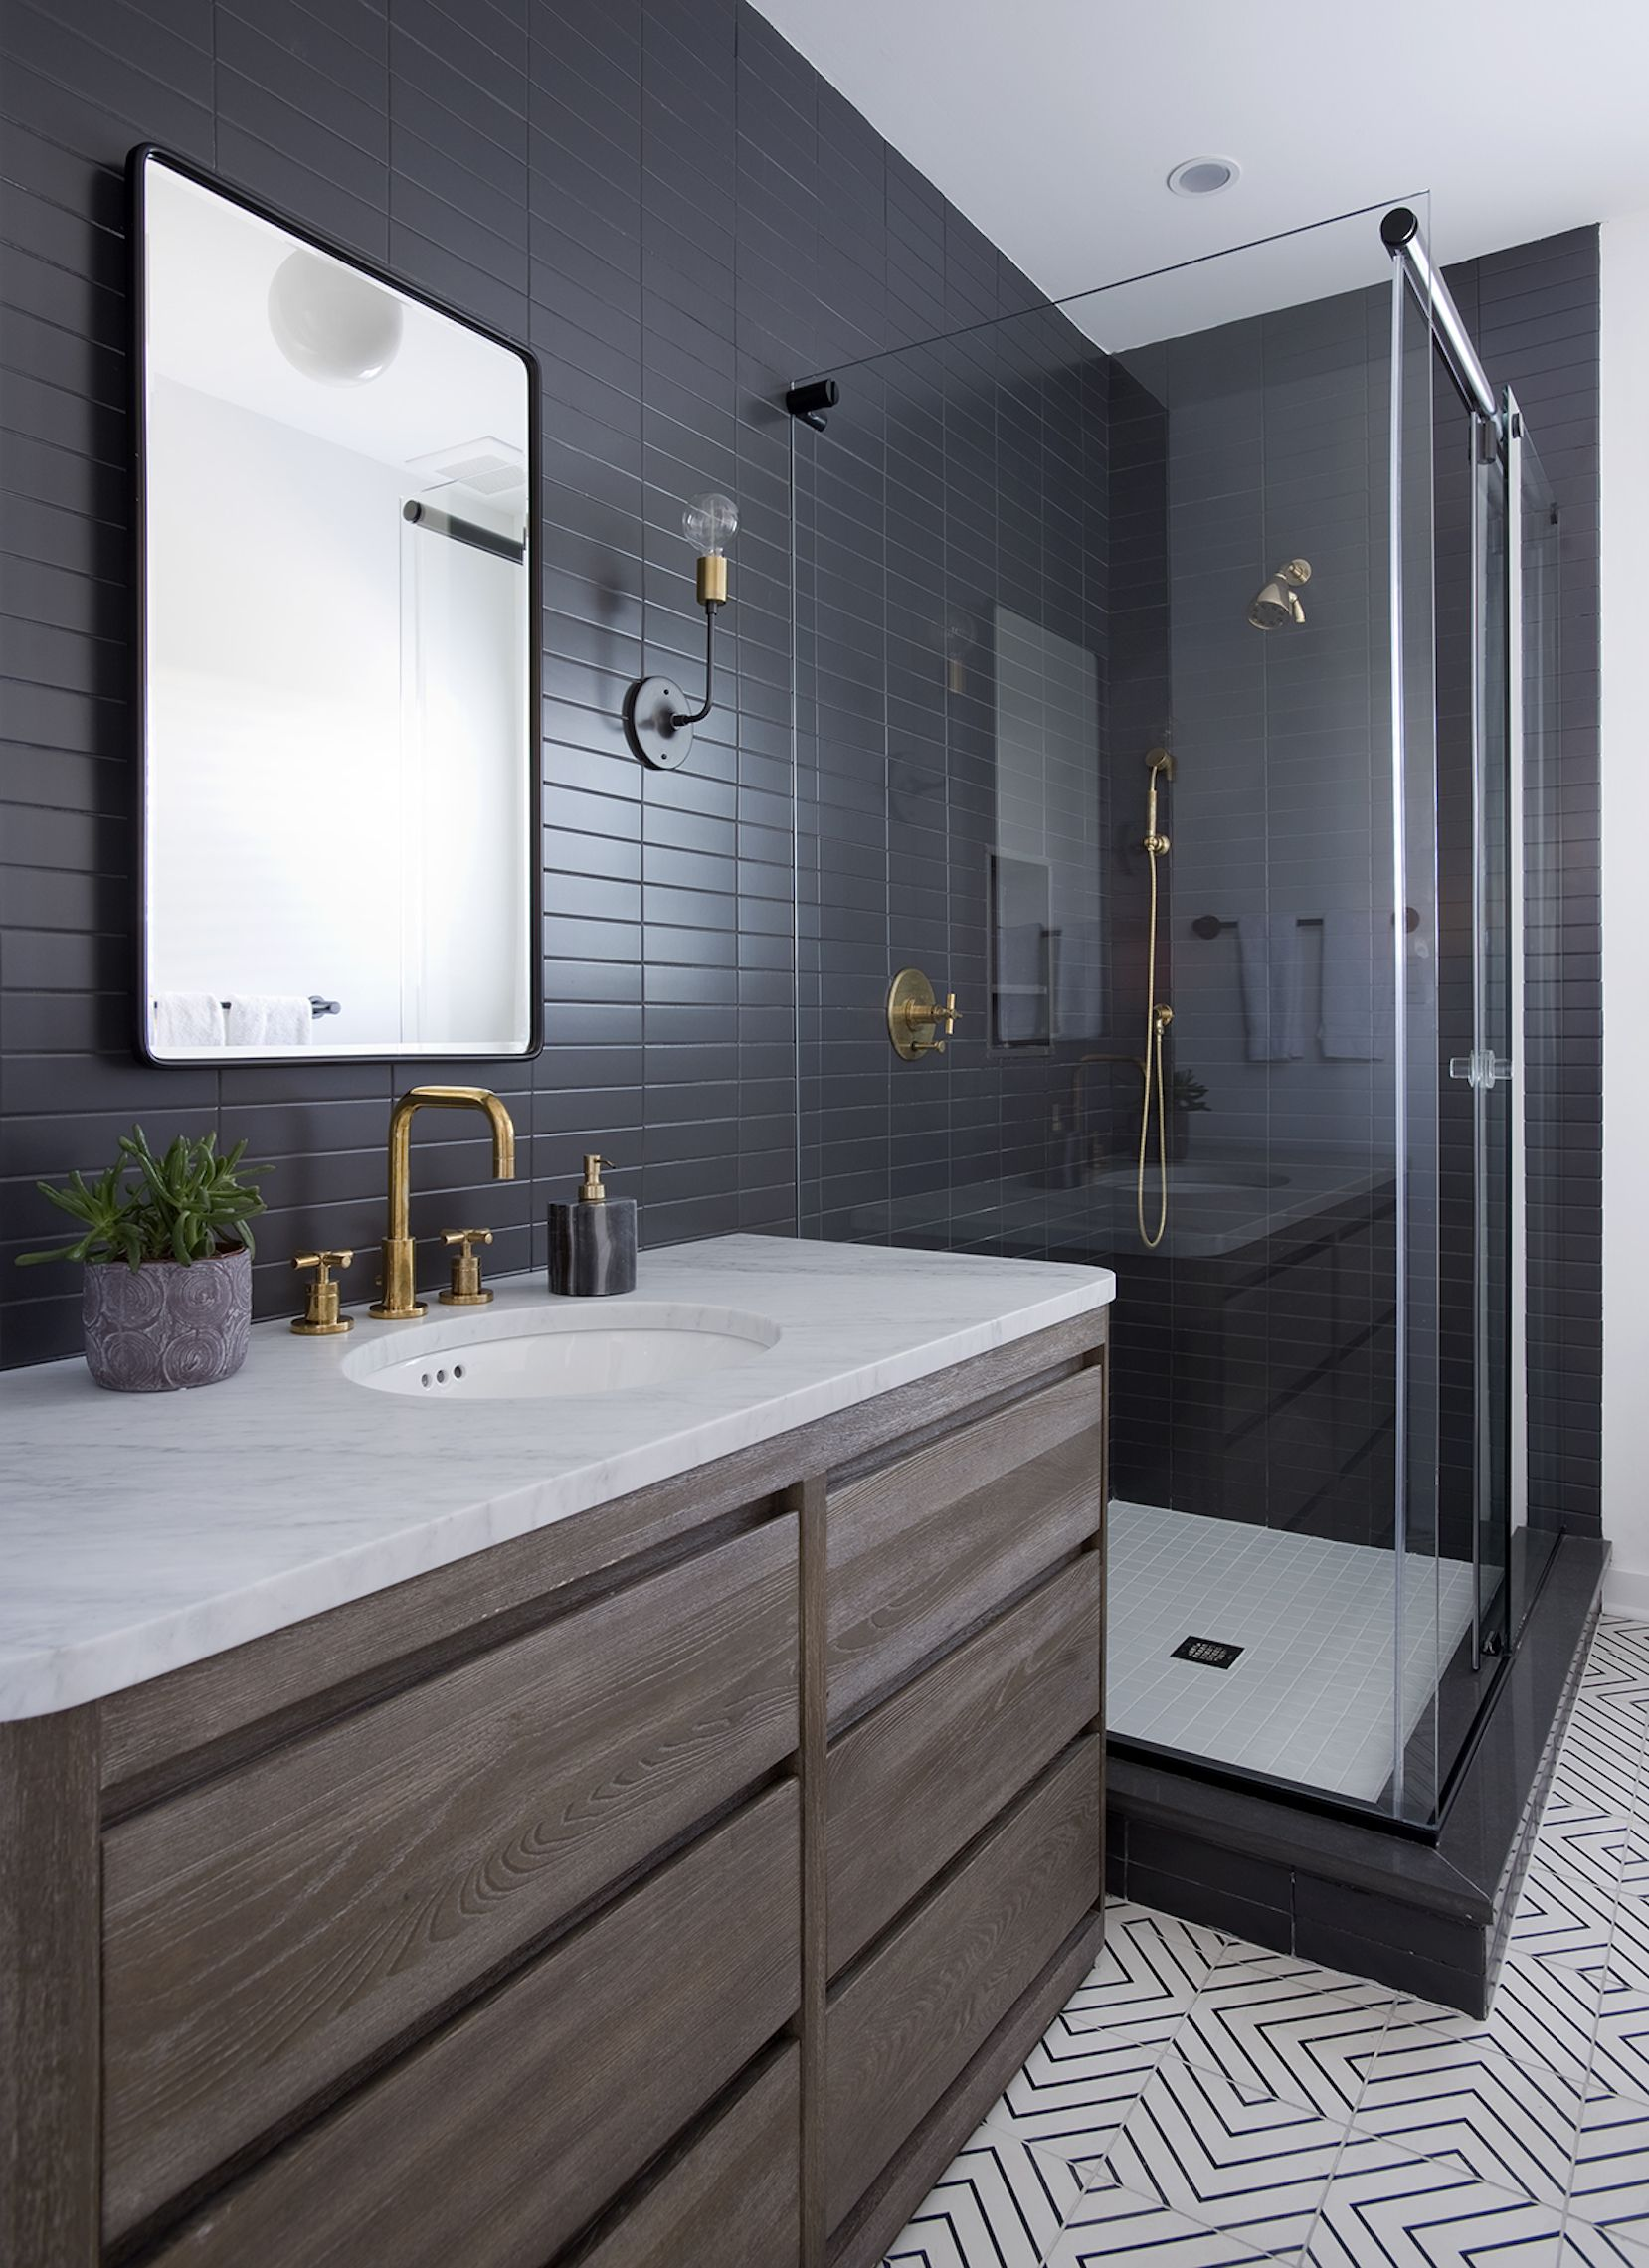 Modern Bathroom Design Ideas Pictures Tips From Hgtv: Sleek Modern Dark Bathroom With Glossy Tiled Walls